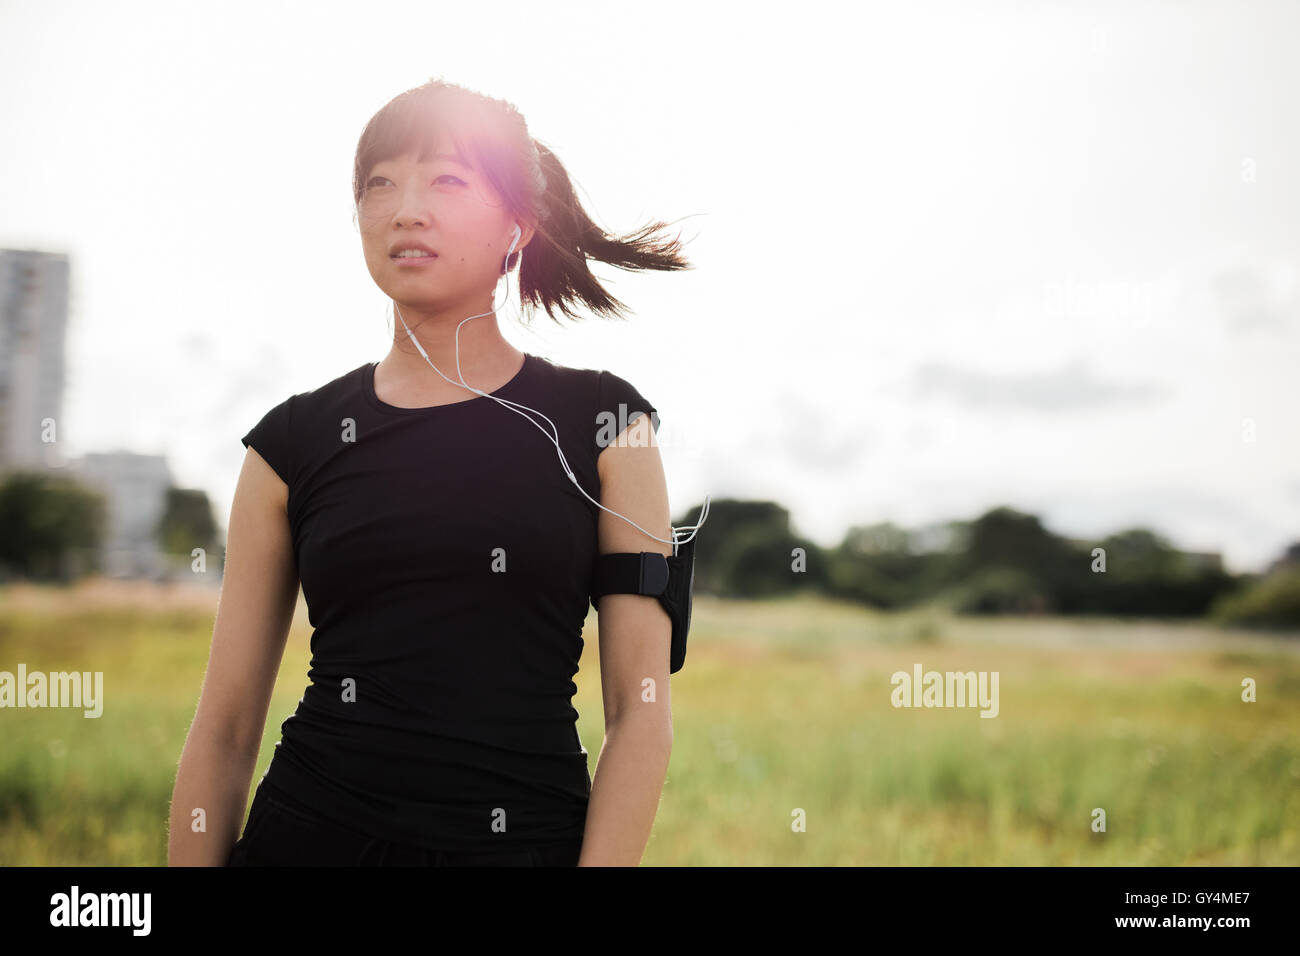 Shot of young woman in sportswear standing outdoors in city park on sunny day and looking away. Chinese female runner - Stock Image